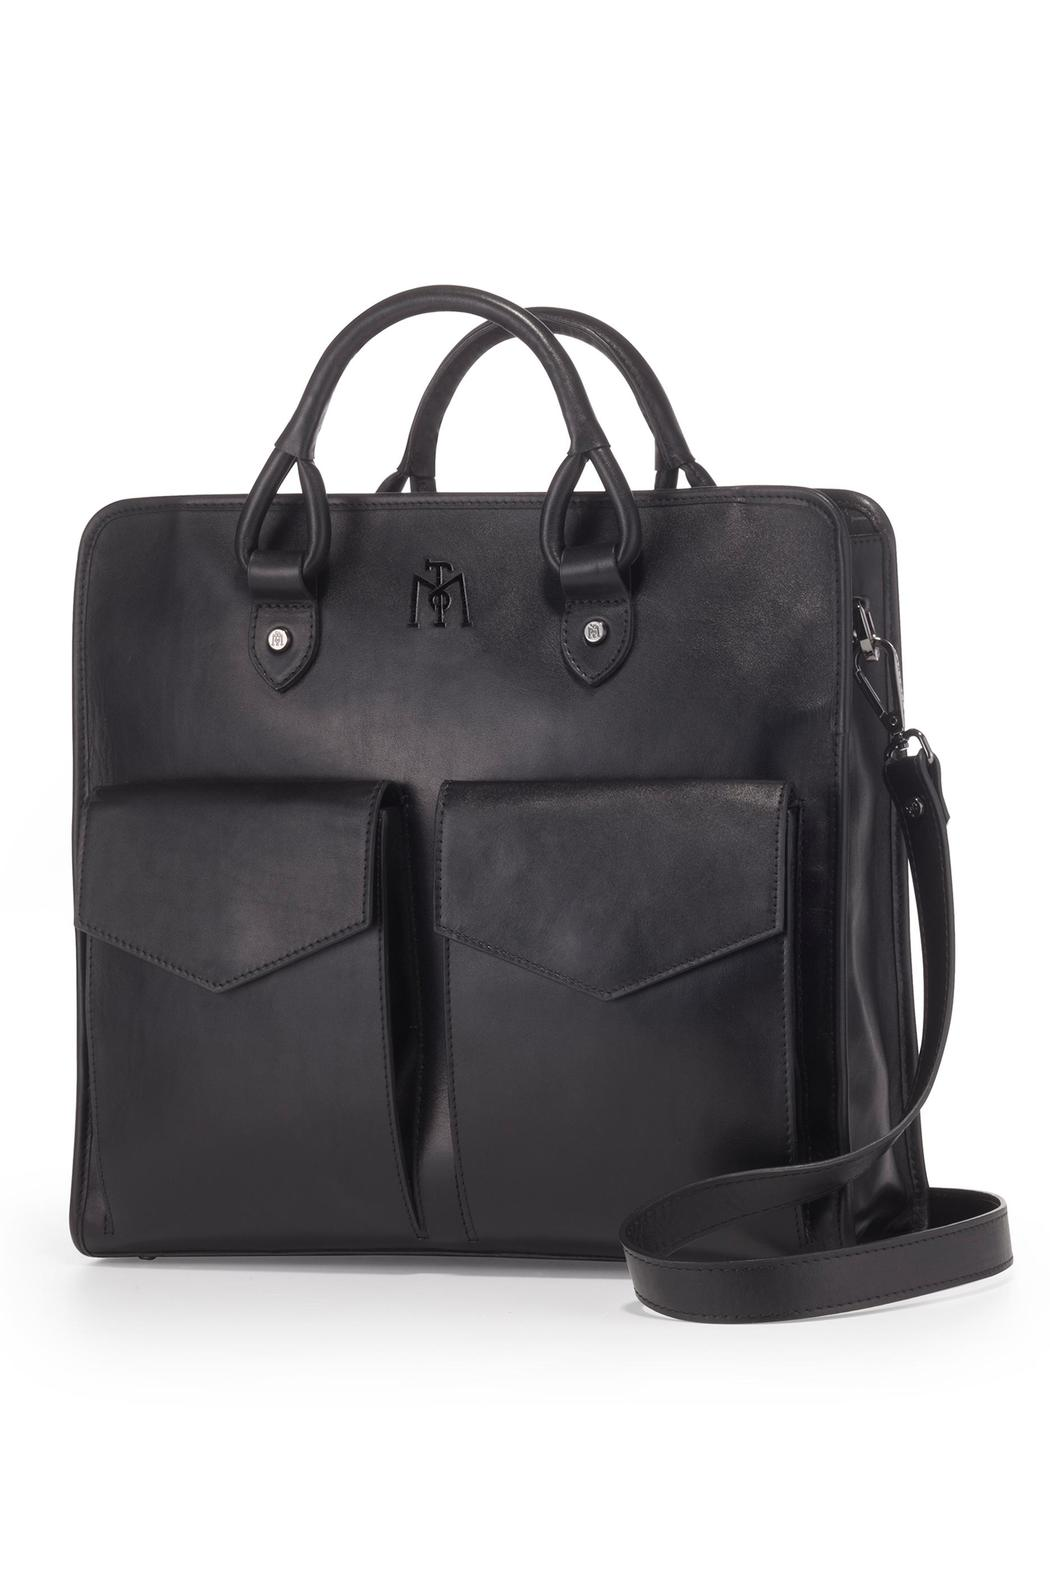 Martella Bags Black Leather Tote - Main Image